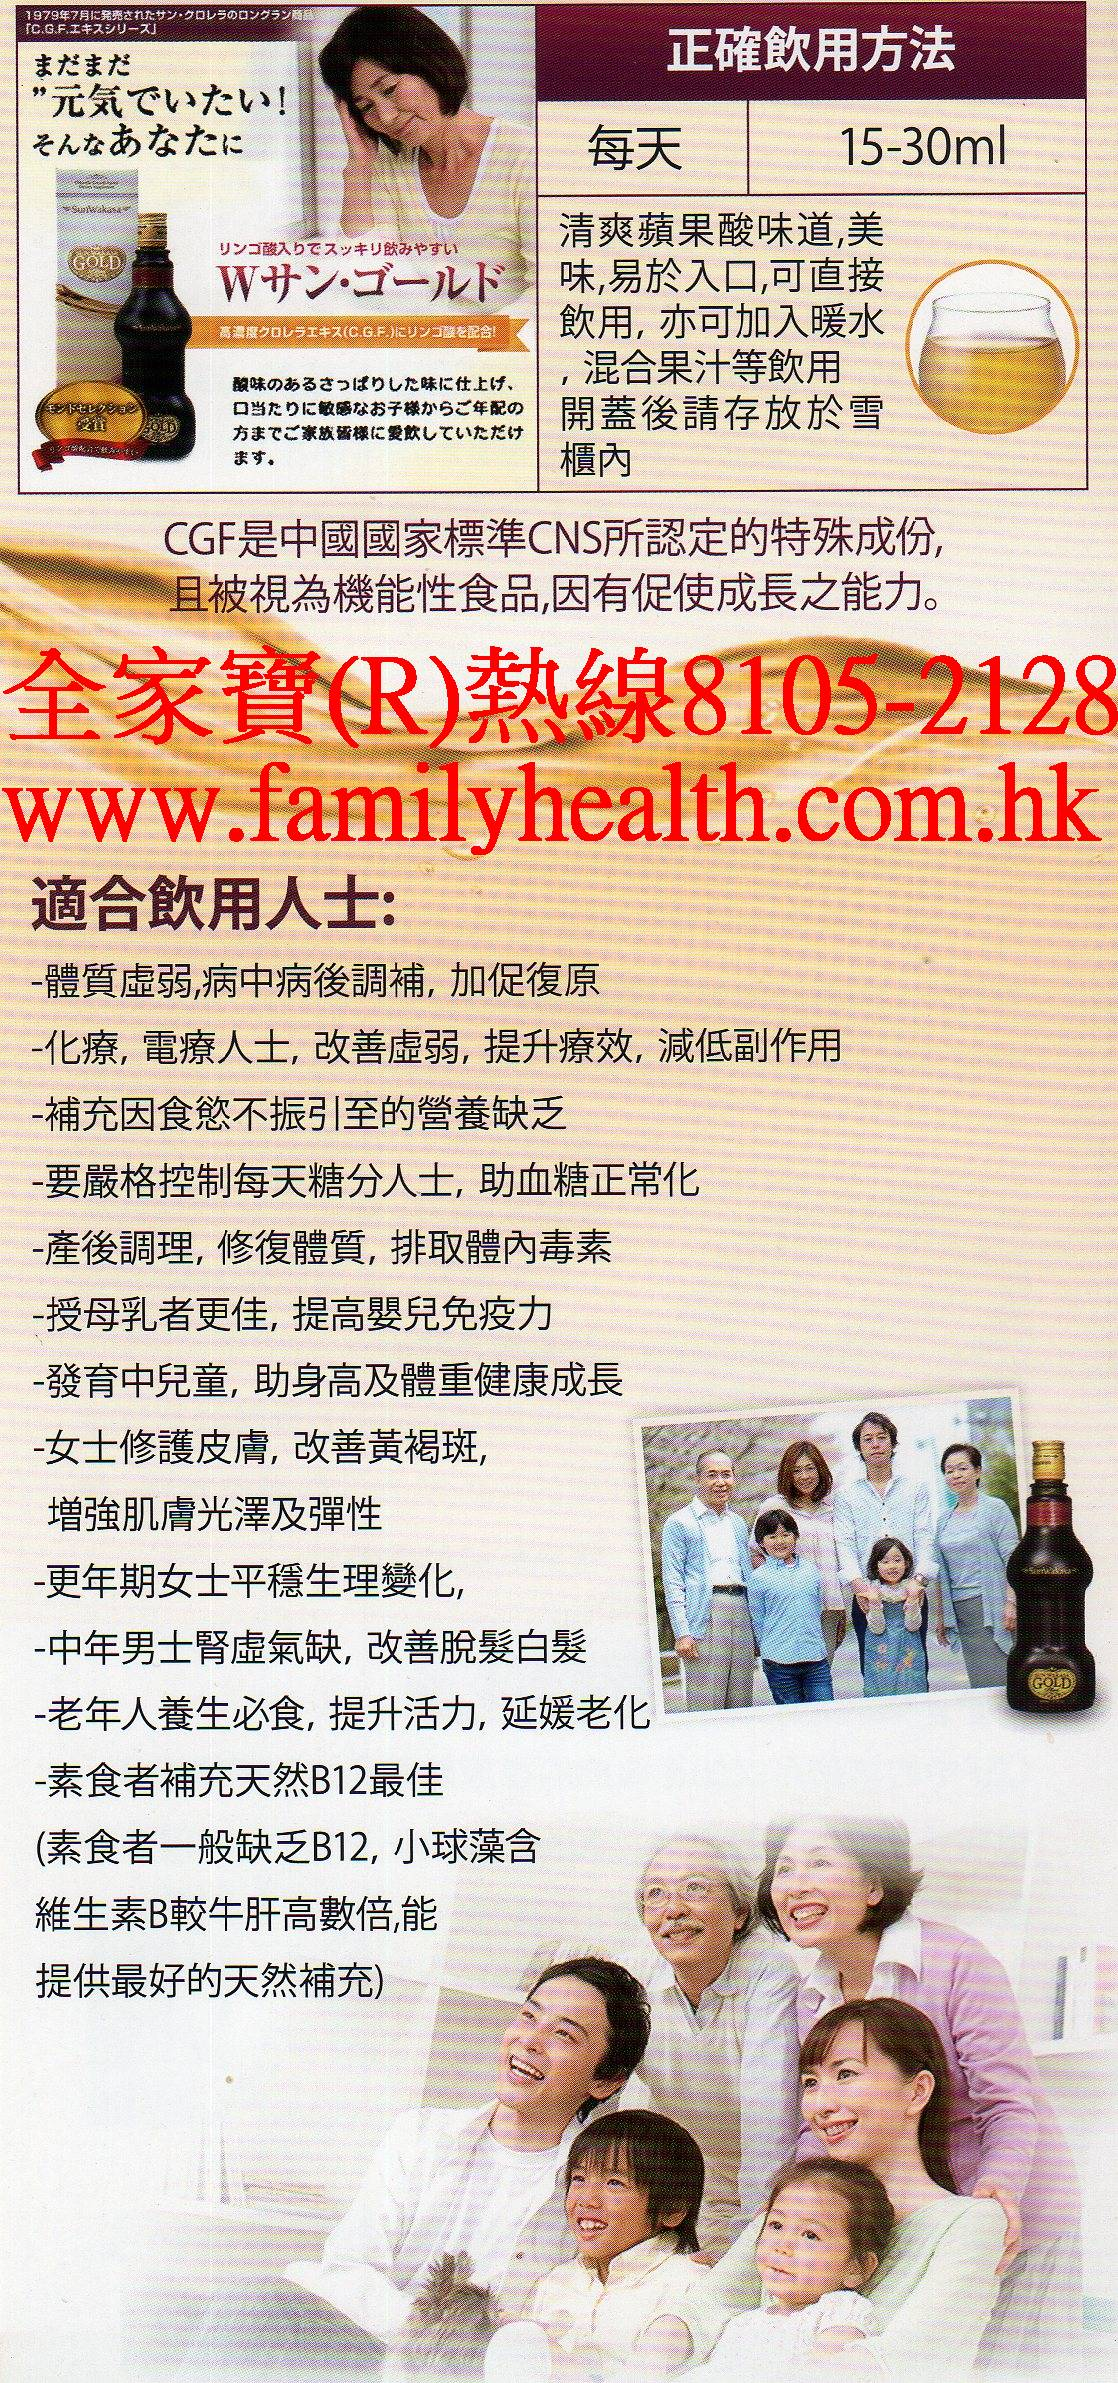 http://www.familyhealth.com.hk/files/full/1023_4.jpg